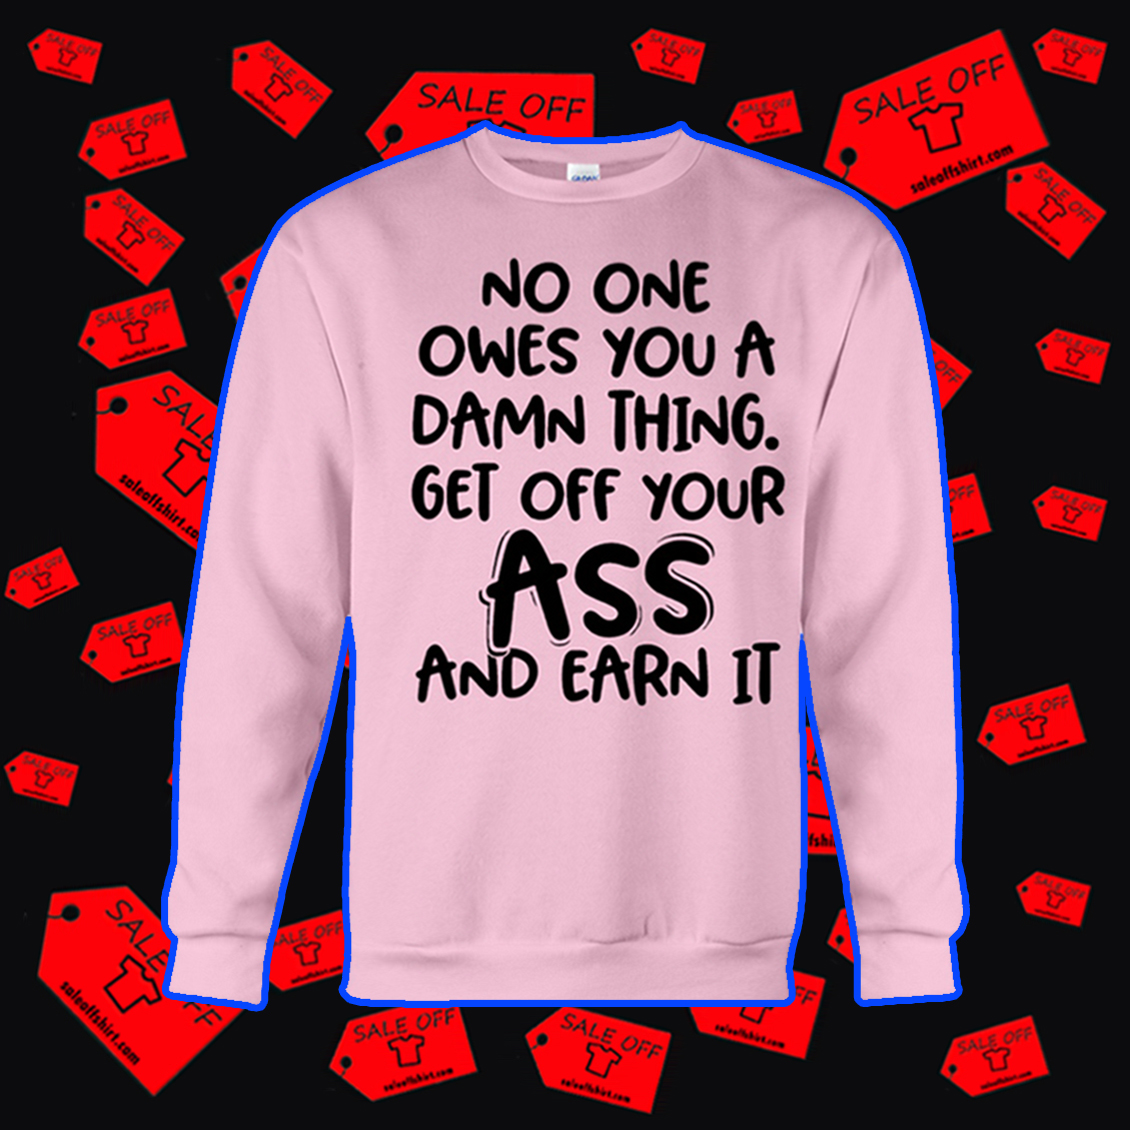 No one owes you a damn thing get off your ass and earn it sweatshirt